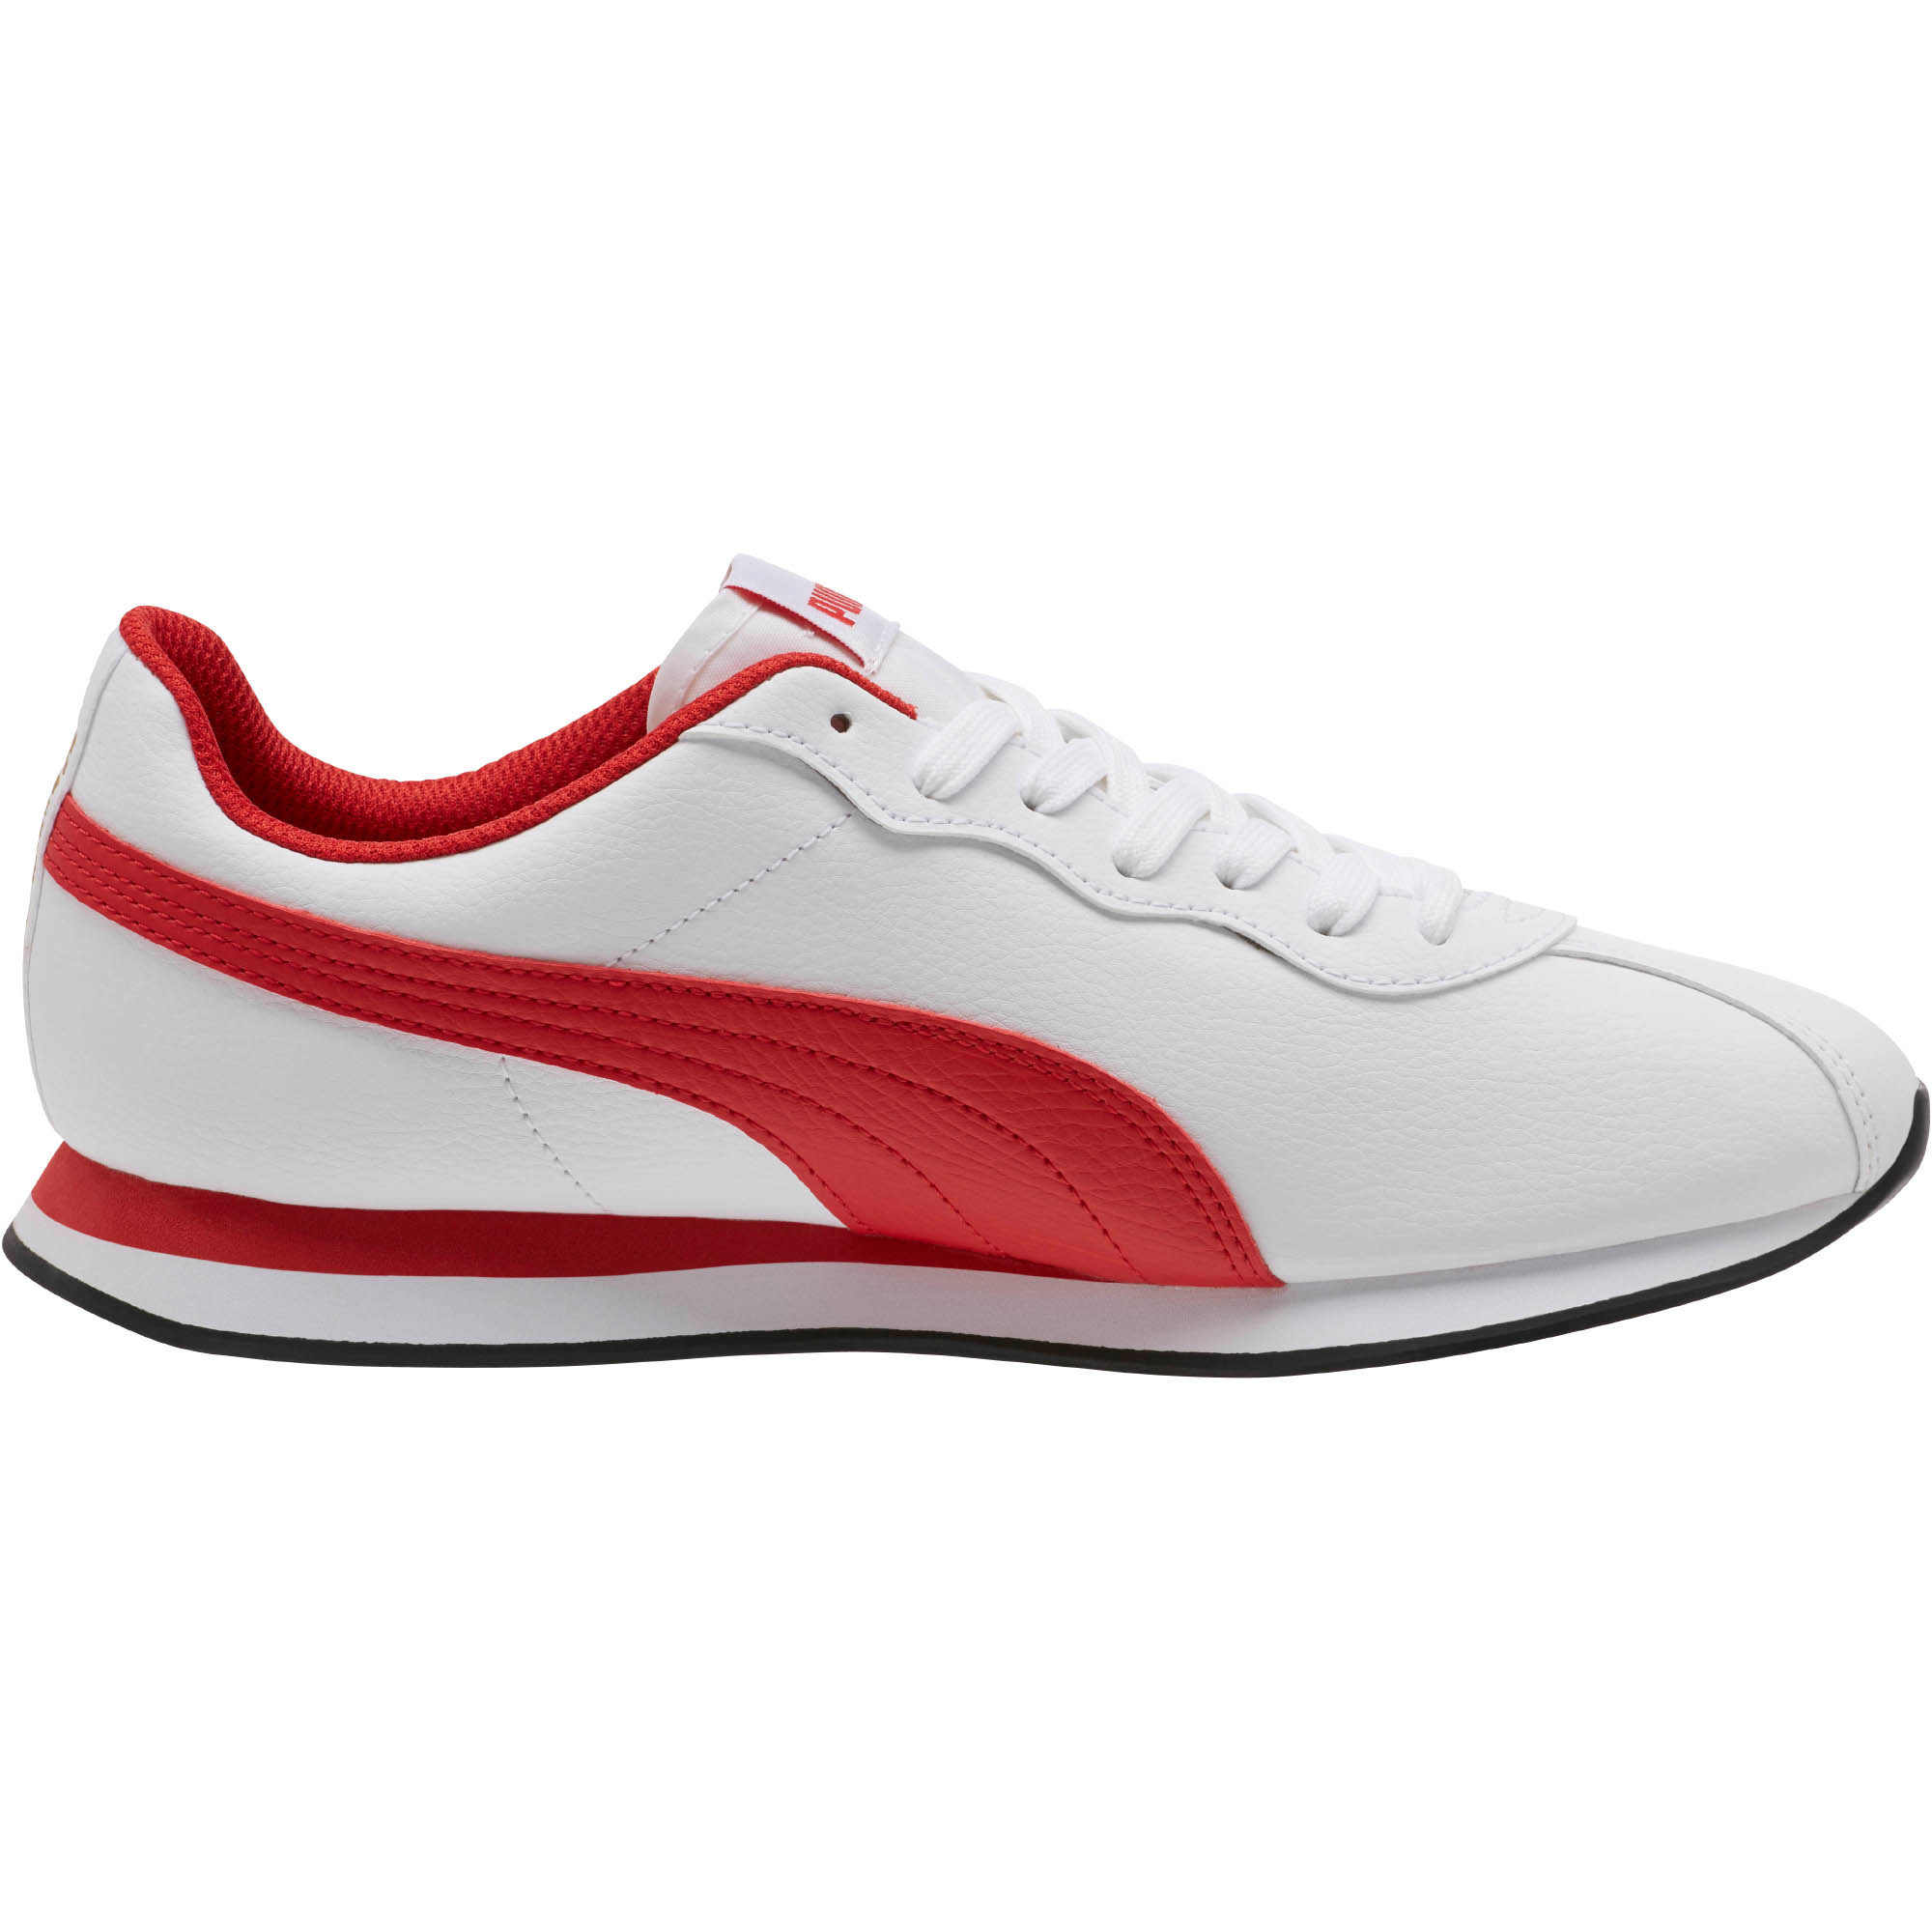 PUMA-Turin-II-Men-039-s-Sneakers-Men-Shoe-Basics thumbnail 31